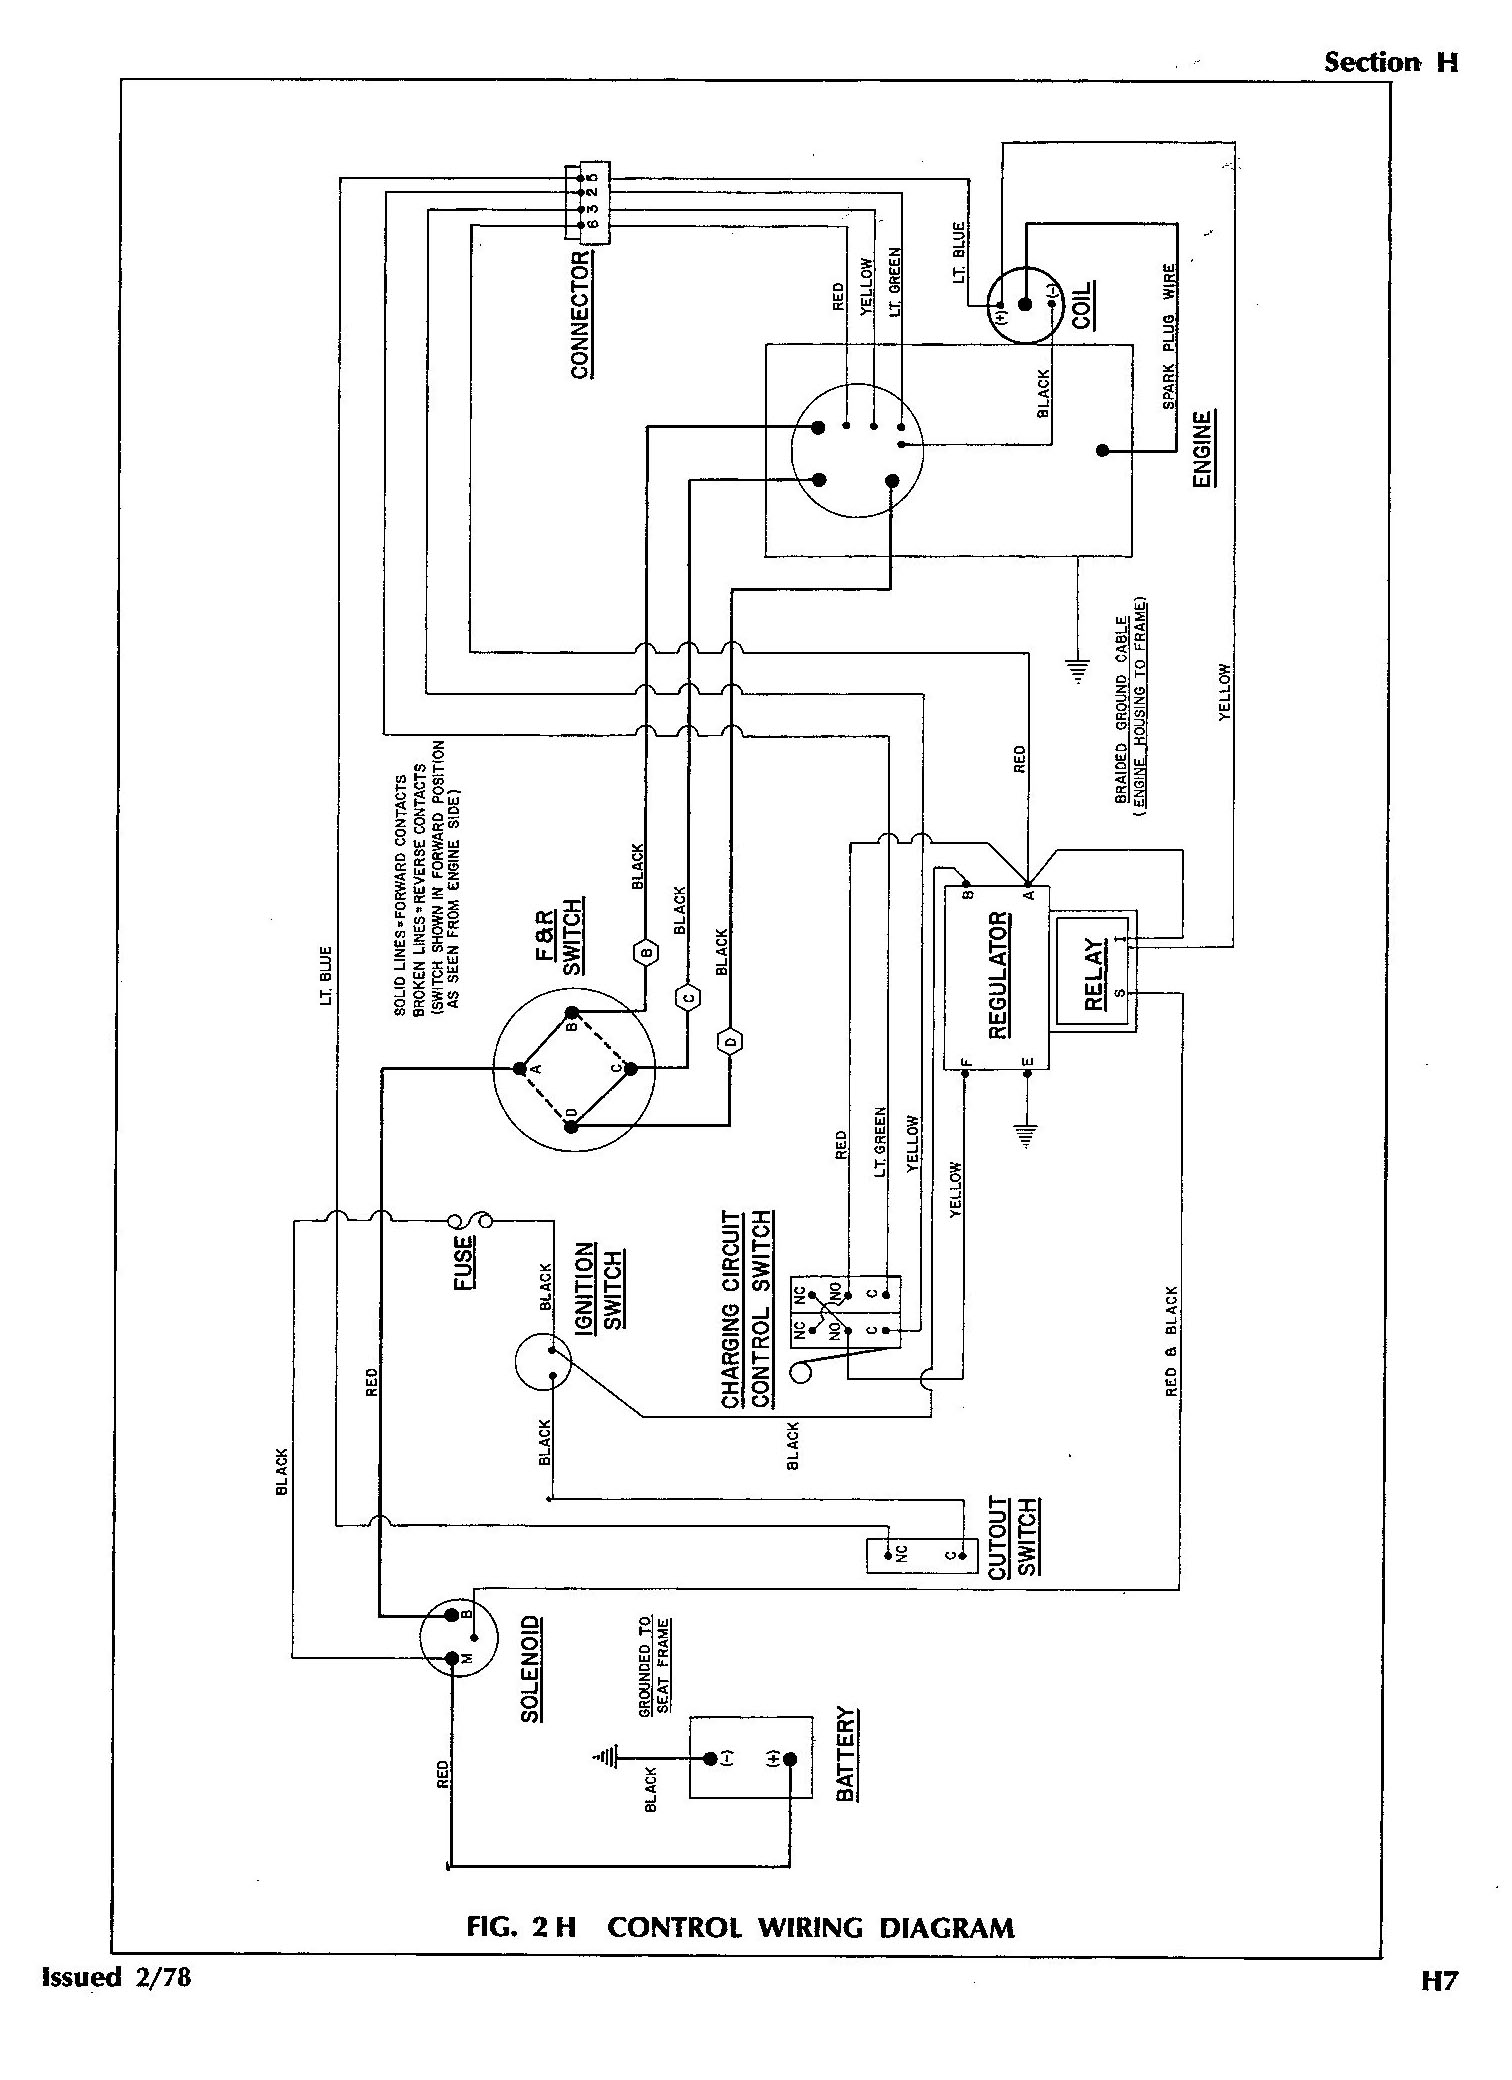 1997 jeep wrangler wiring diagram pdf with 81 Ezgo Marathon Golf Cart Wiring Diagram on 2004 Dodge Durango Fuse Box Diagram further Oil Pressure Sending Unit Location 90996 furthermore RepairGuideContent as well 1997 Ford Probe Wiring Diagram Harness also Mazda Protege Daytime Running Light Drl Wiring Diagram.